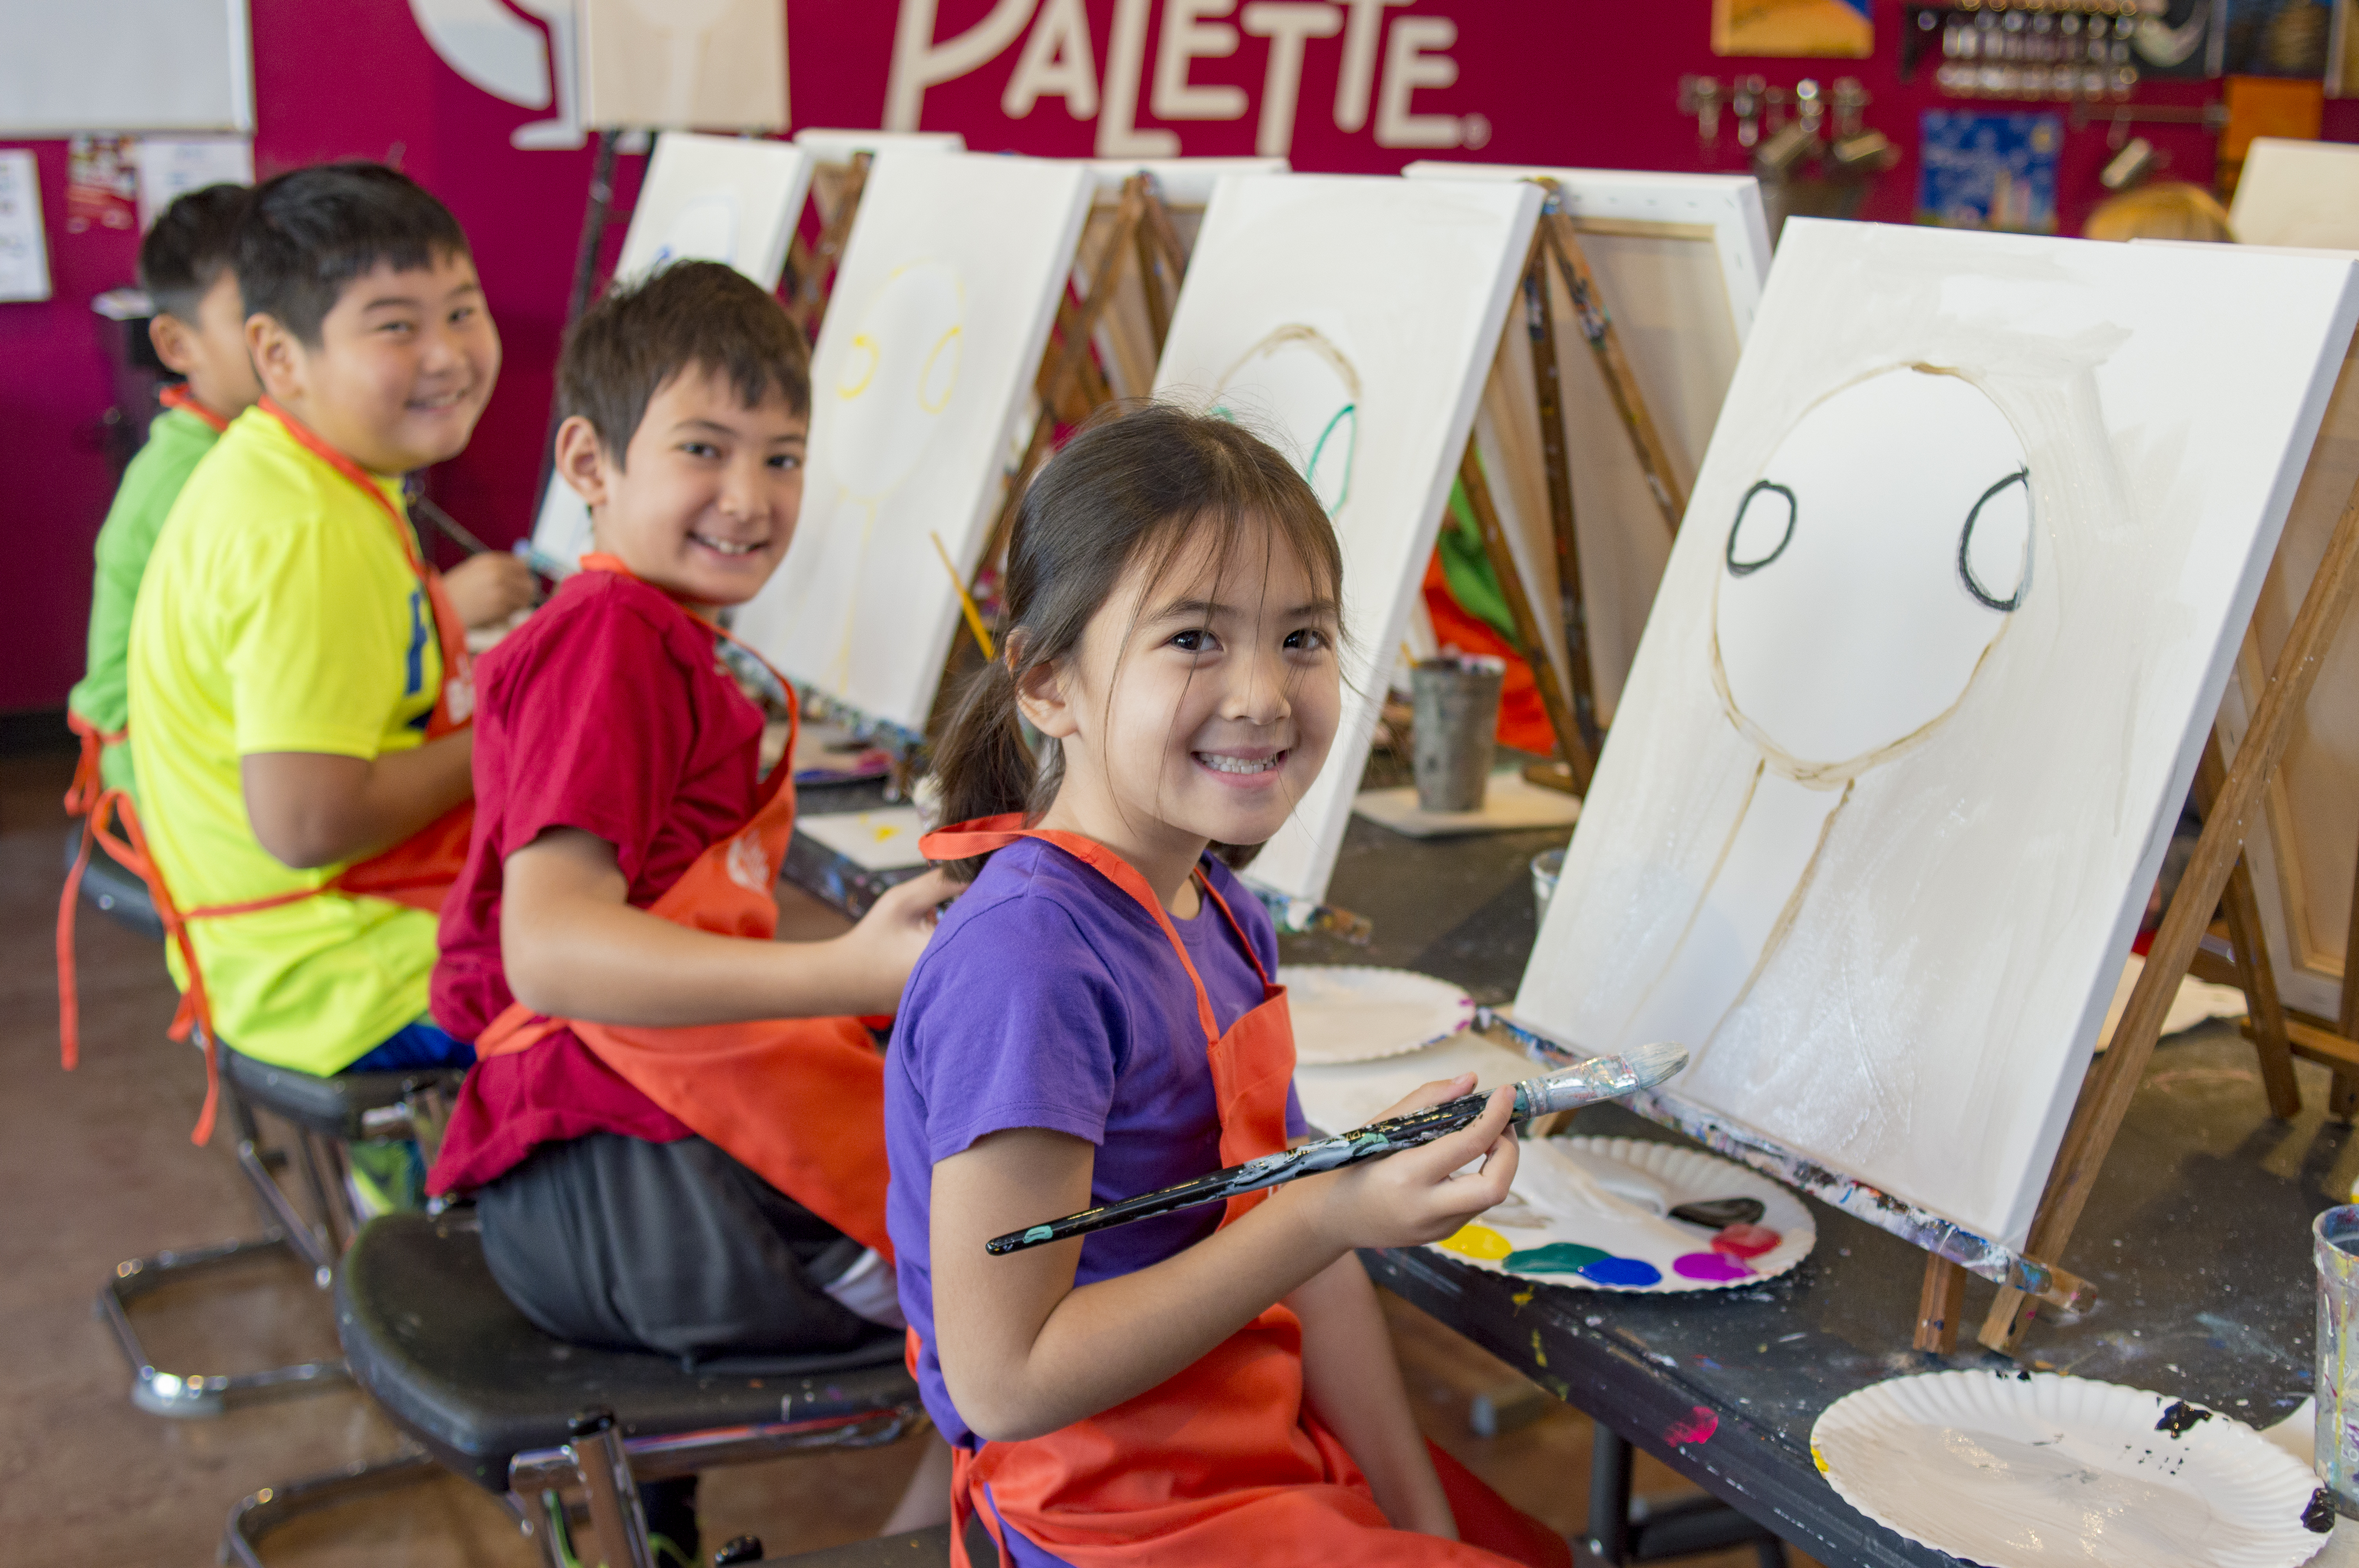 In Addition To Our Fun Adult Painting Events We Celebrate Kids And Families Have Little Brushes Family Paintings Birthday Parties Summer Winter